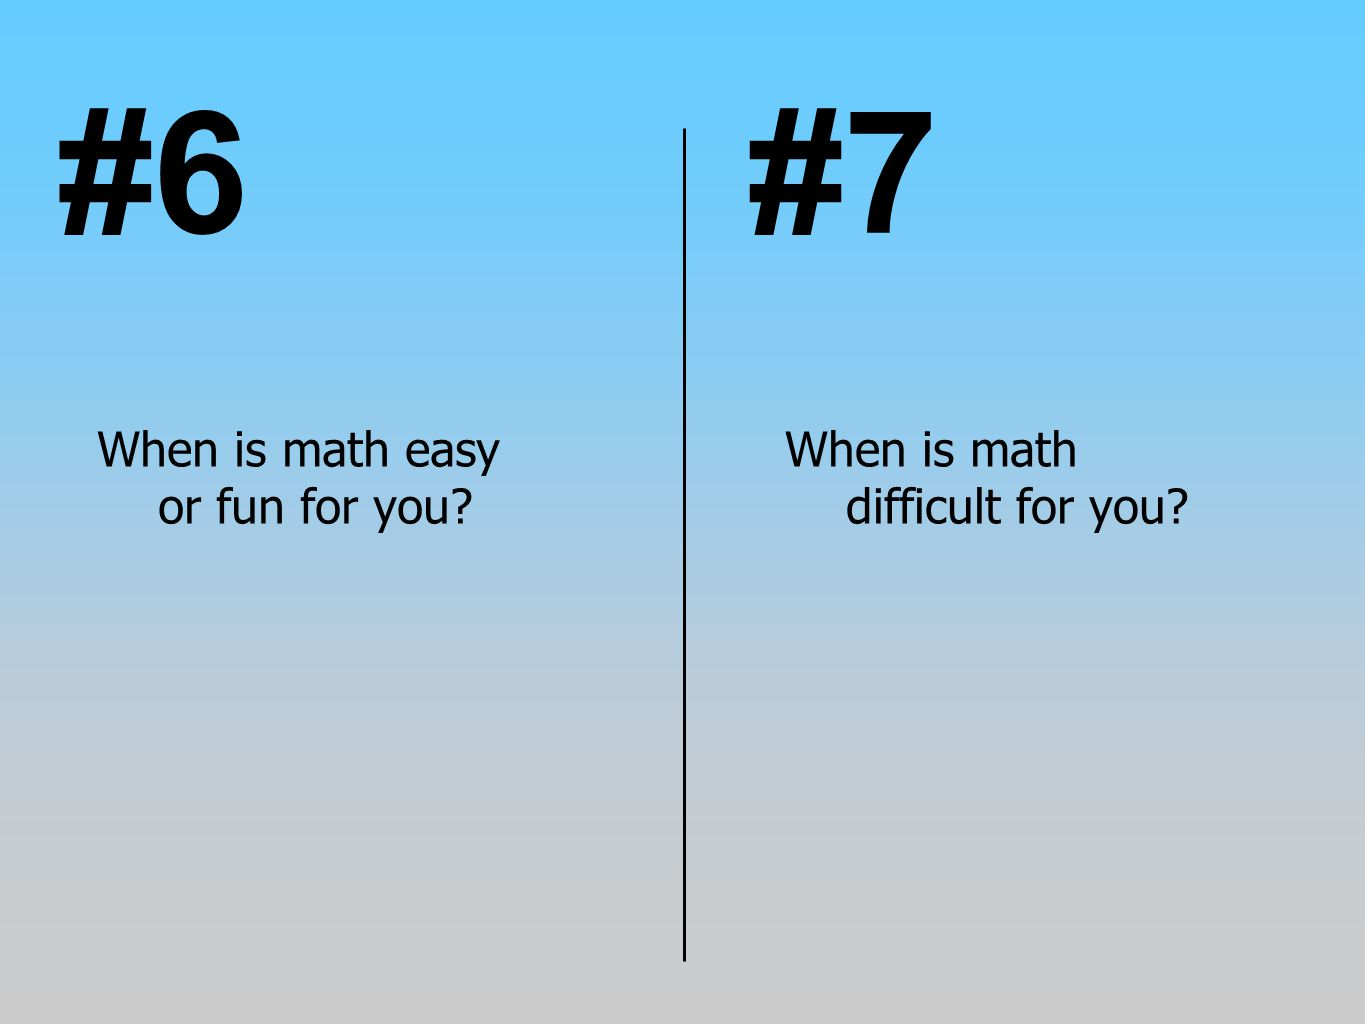 #7#6 When is math difficult for you? When is math easy or fun for you?